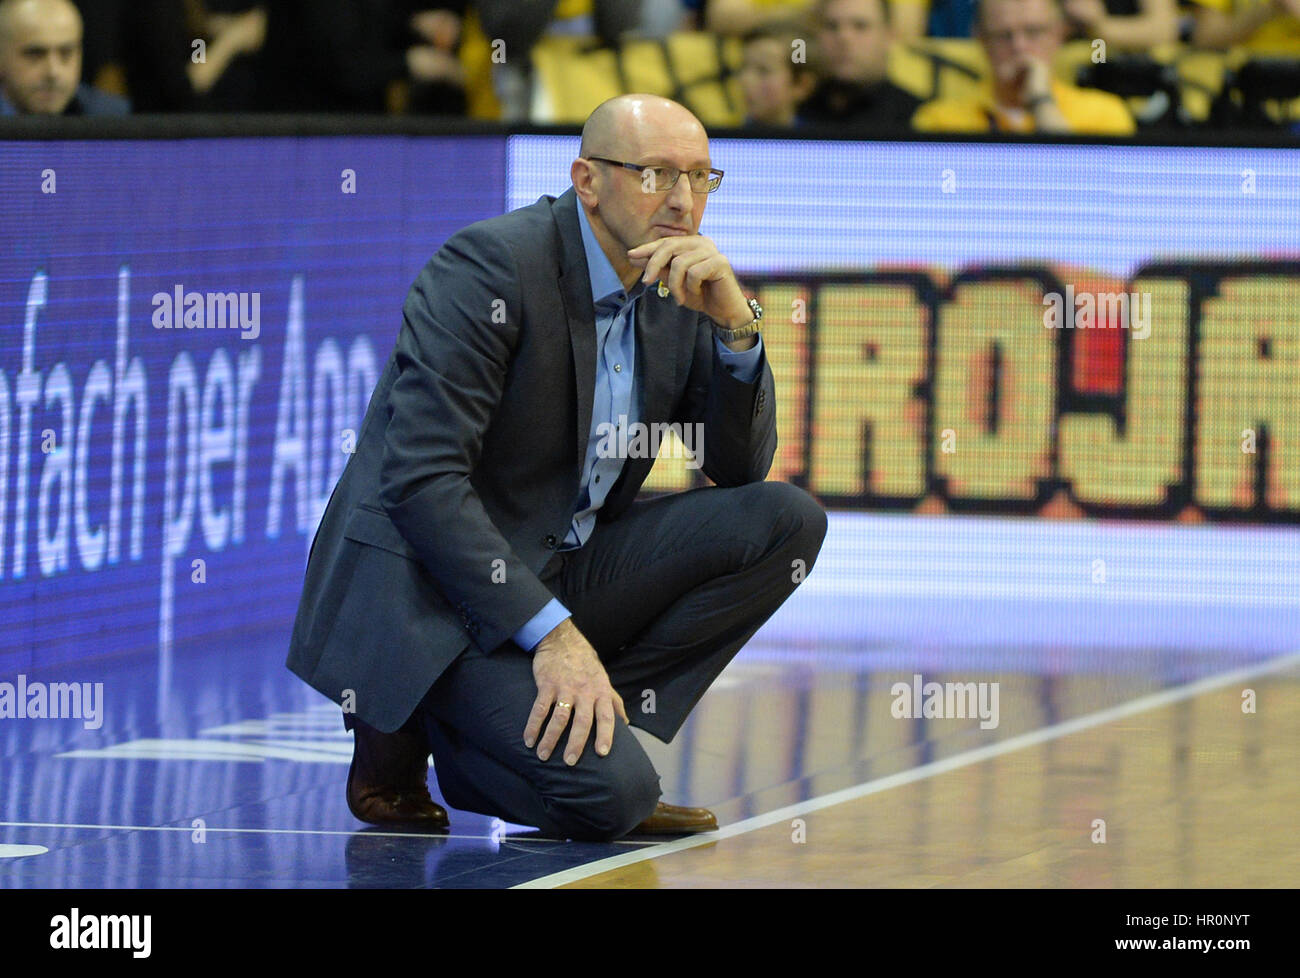 Oldenburg's coach Mladen Drijencic sitting on the sideline during the game between EWE Baskets Oldenburg vs. - Stock Image